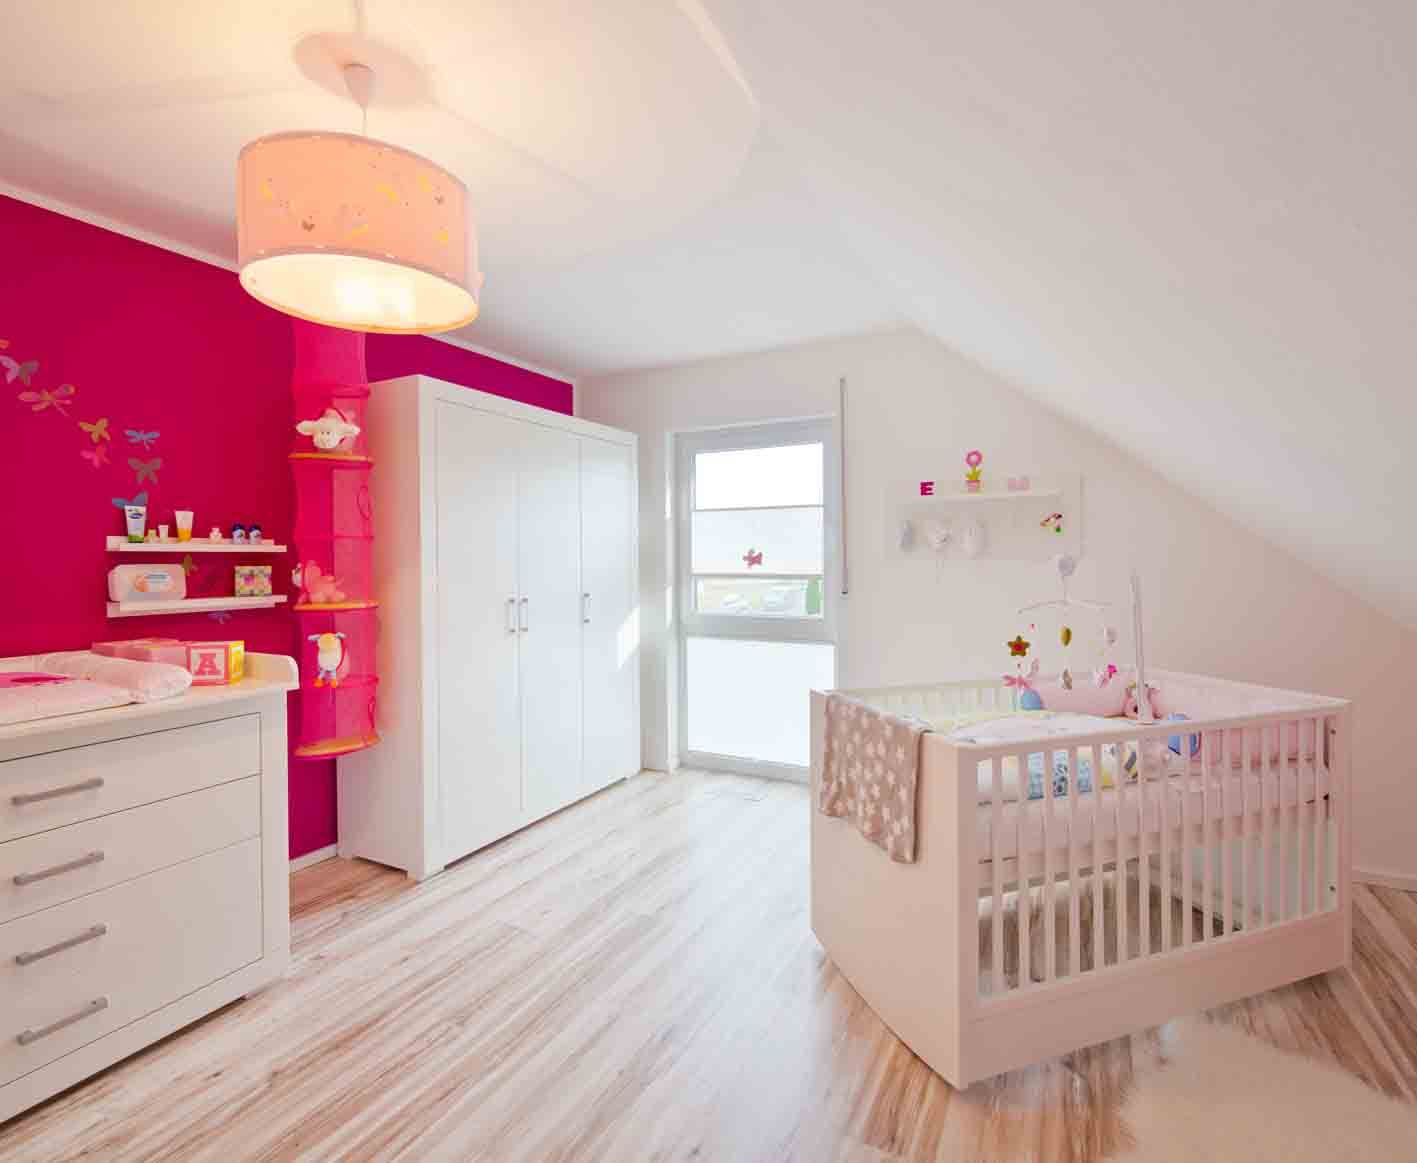 Kinderzimmer Neutral ~ 47 best wohnideen kinderzimmer und gästezimmer images on pinterest